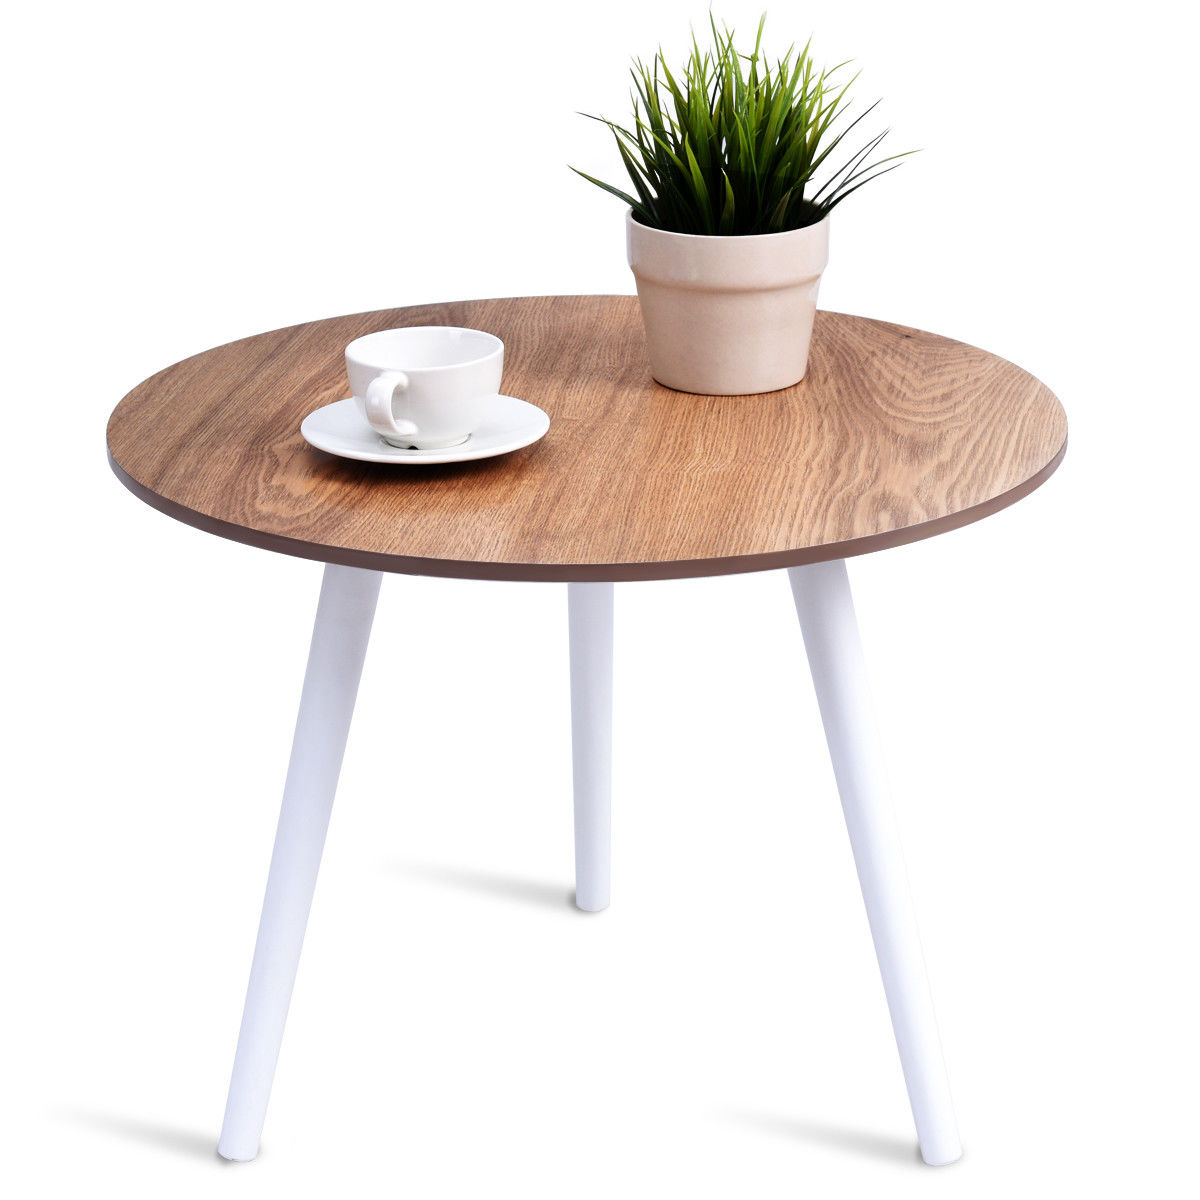 tables products by number round signature item ashley design fraloni table end